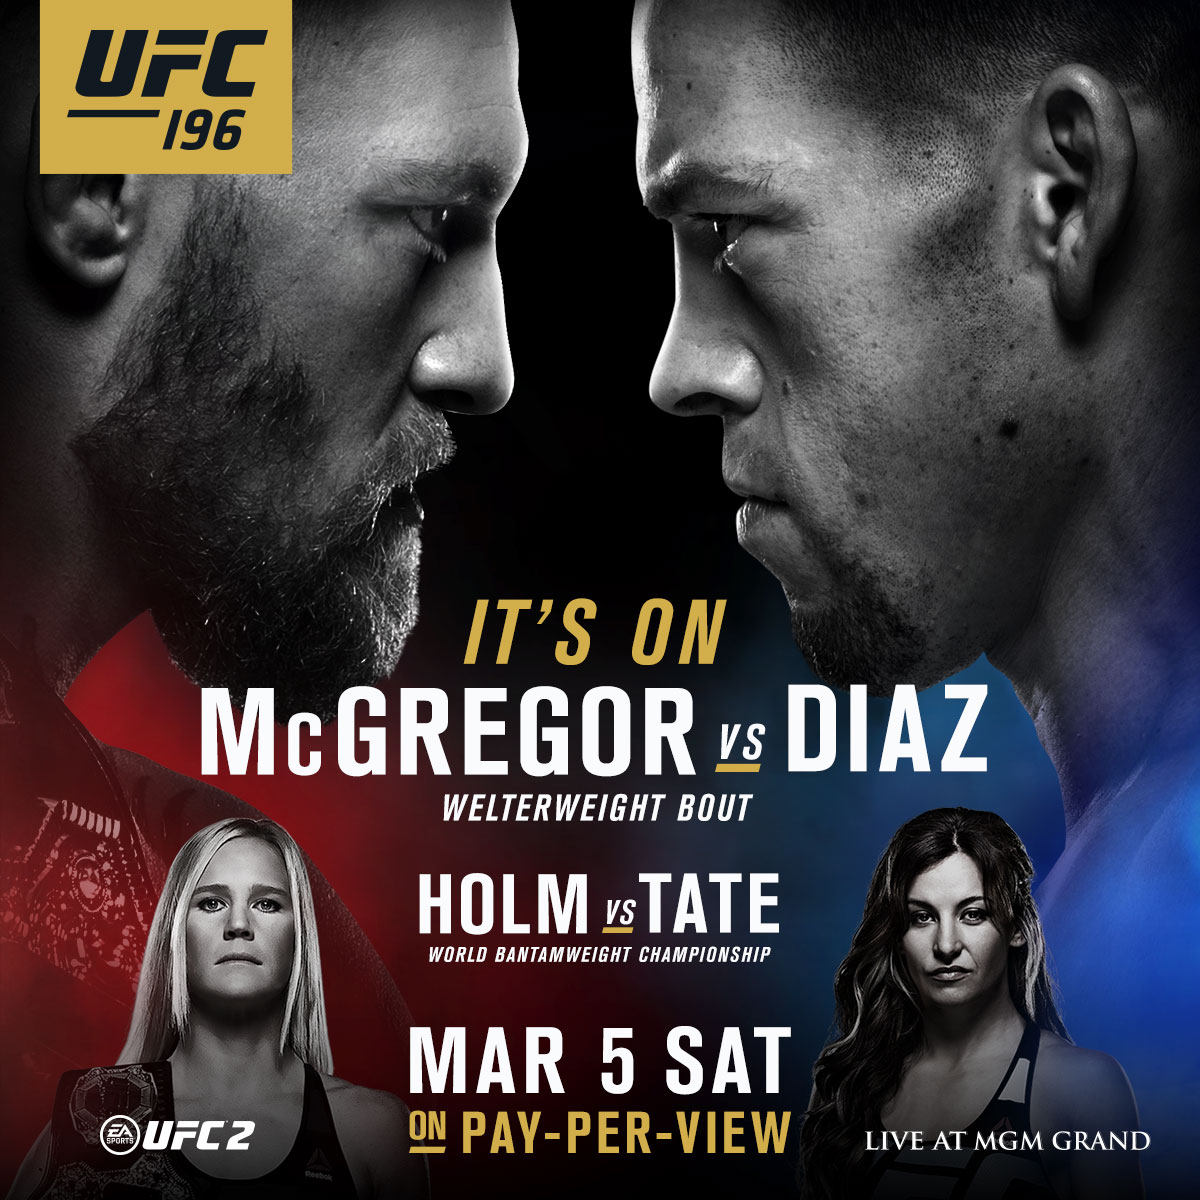 Don't miss Holm vs. Tate this Saturday at UFC 196. Pre-order the PPV or get tickets now